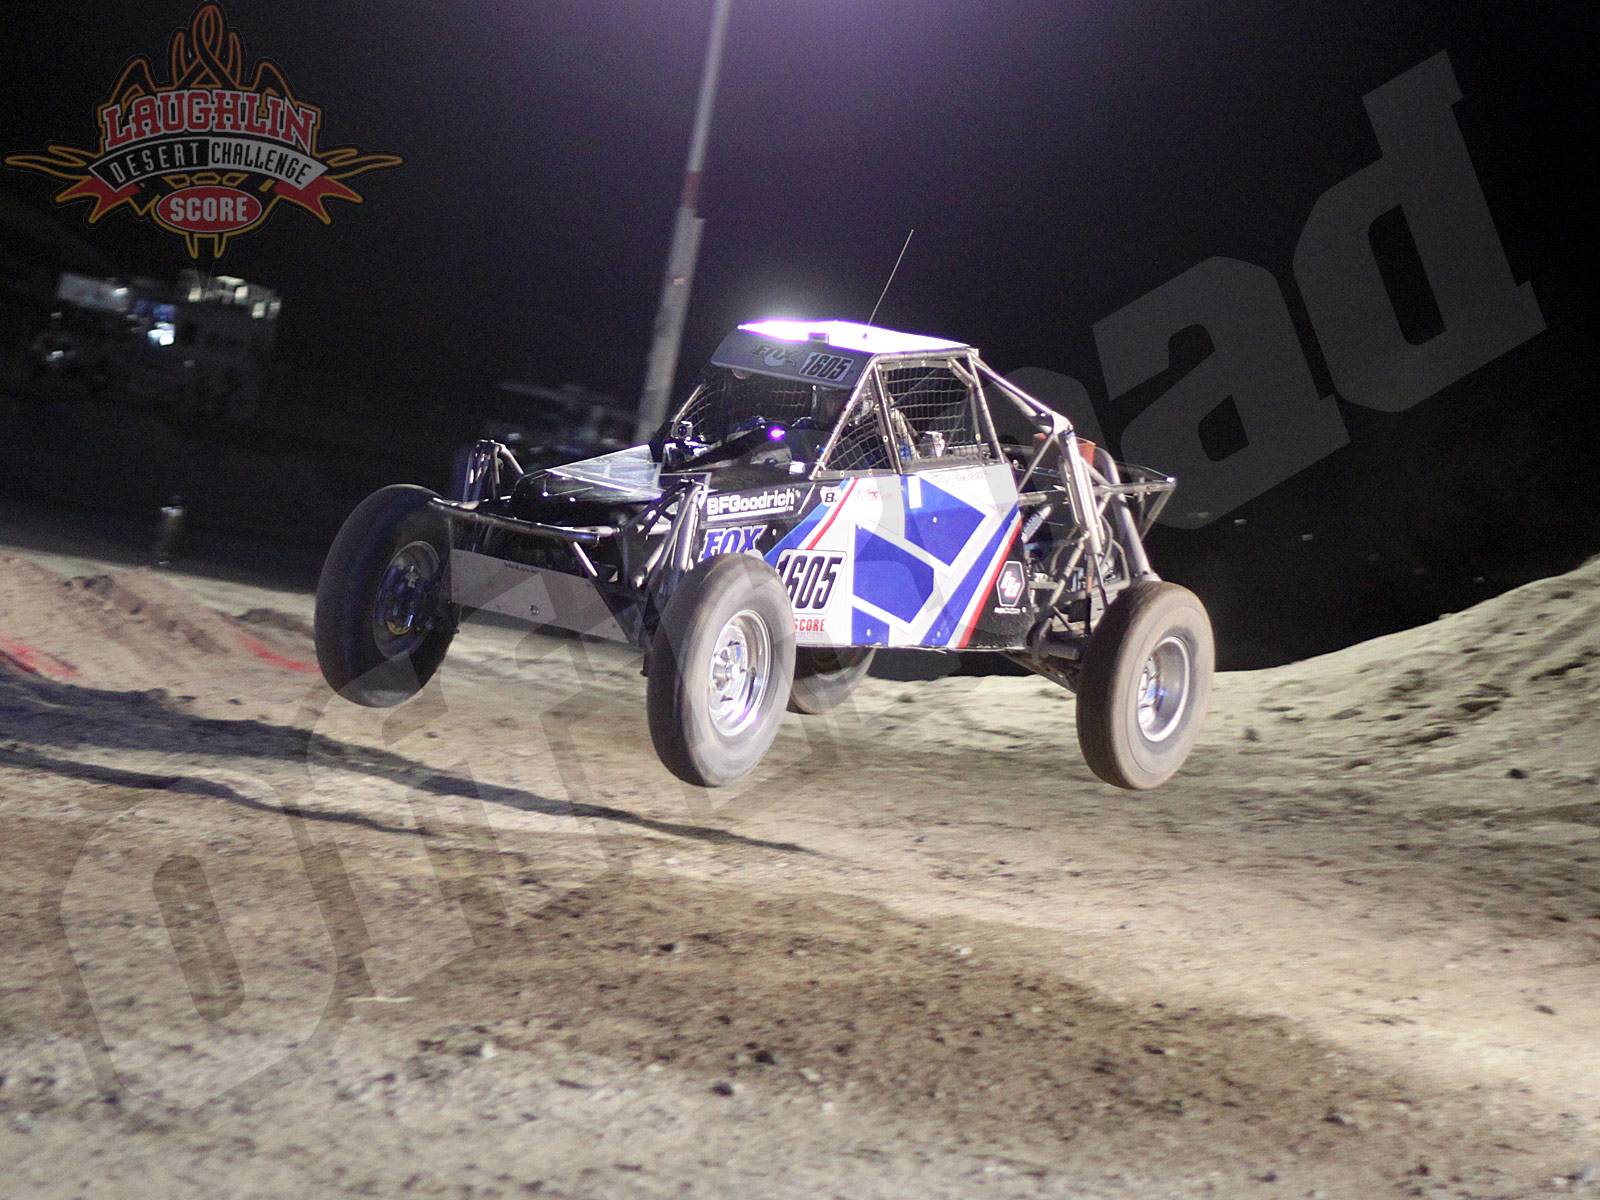 012611or 5182+2011 score laughlin desert challenge+laughlin leap